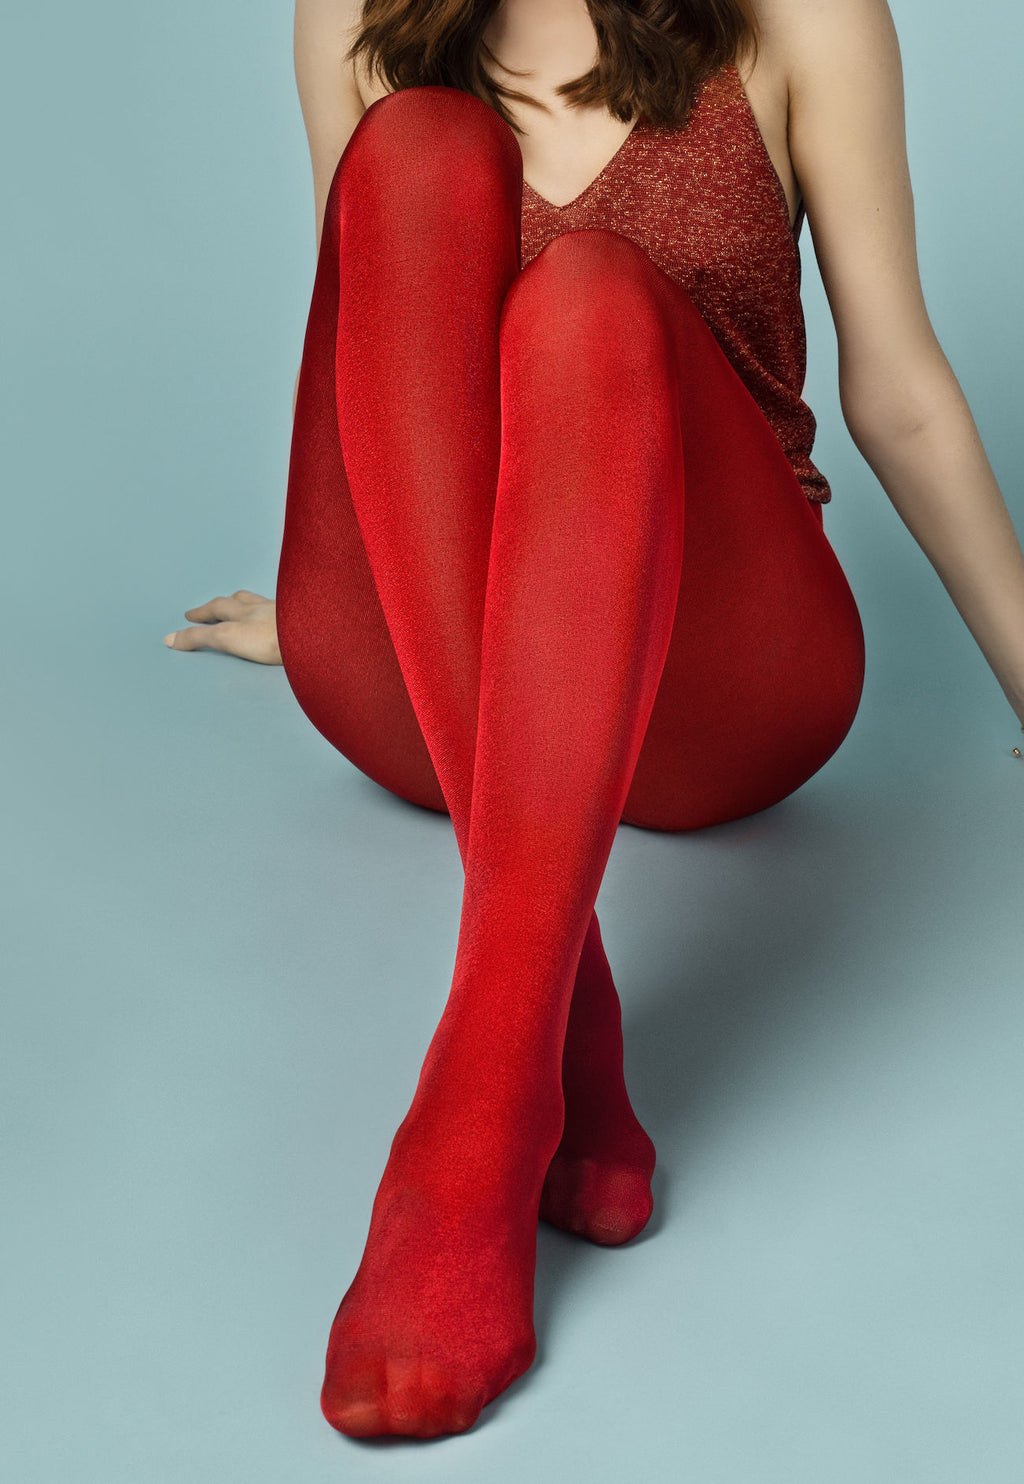 Glossy 70 Den Coloured Opaque 3D Tights by Fiore in red